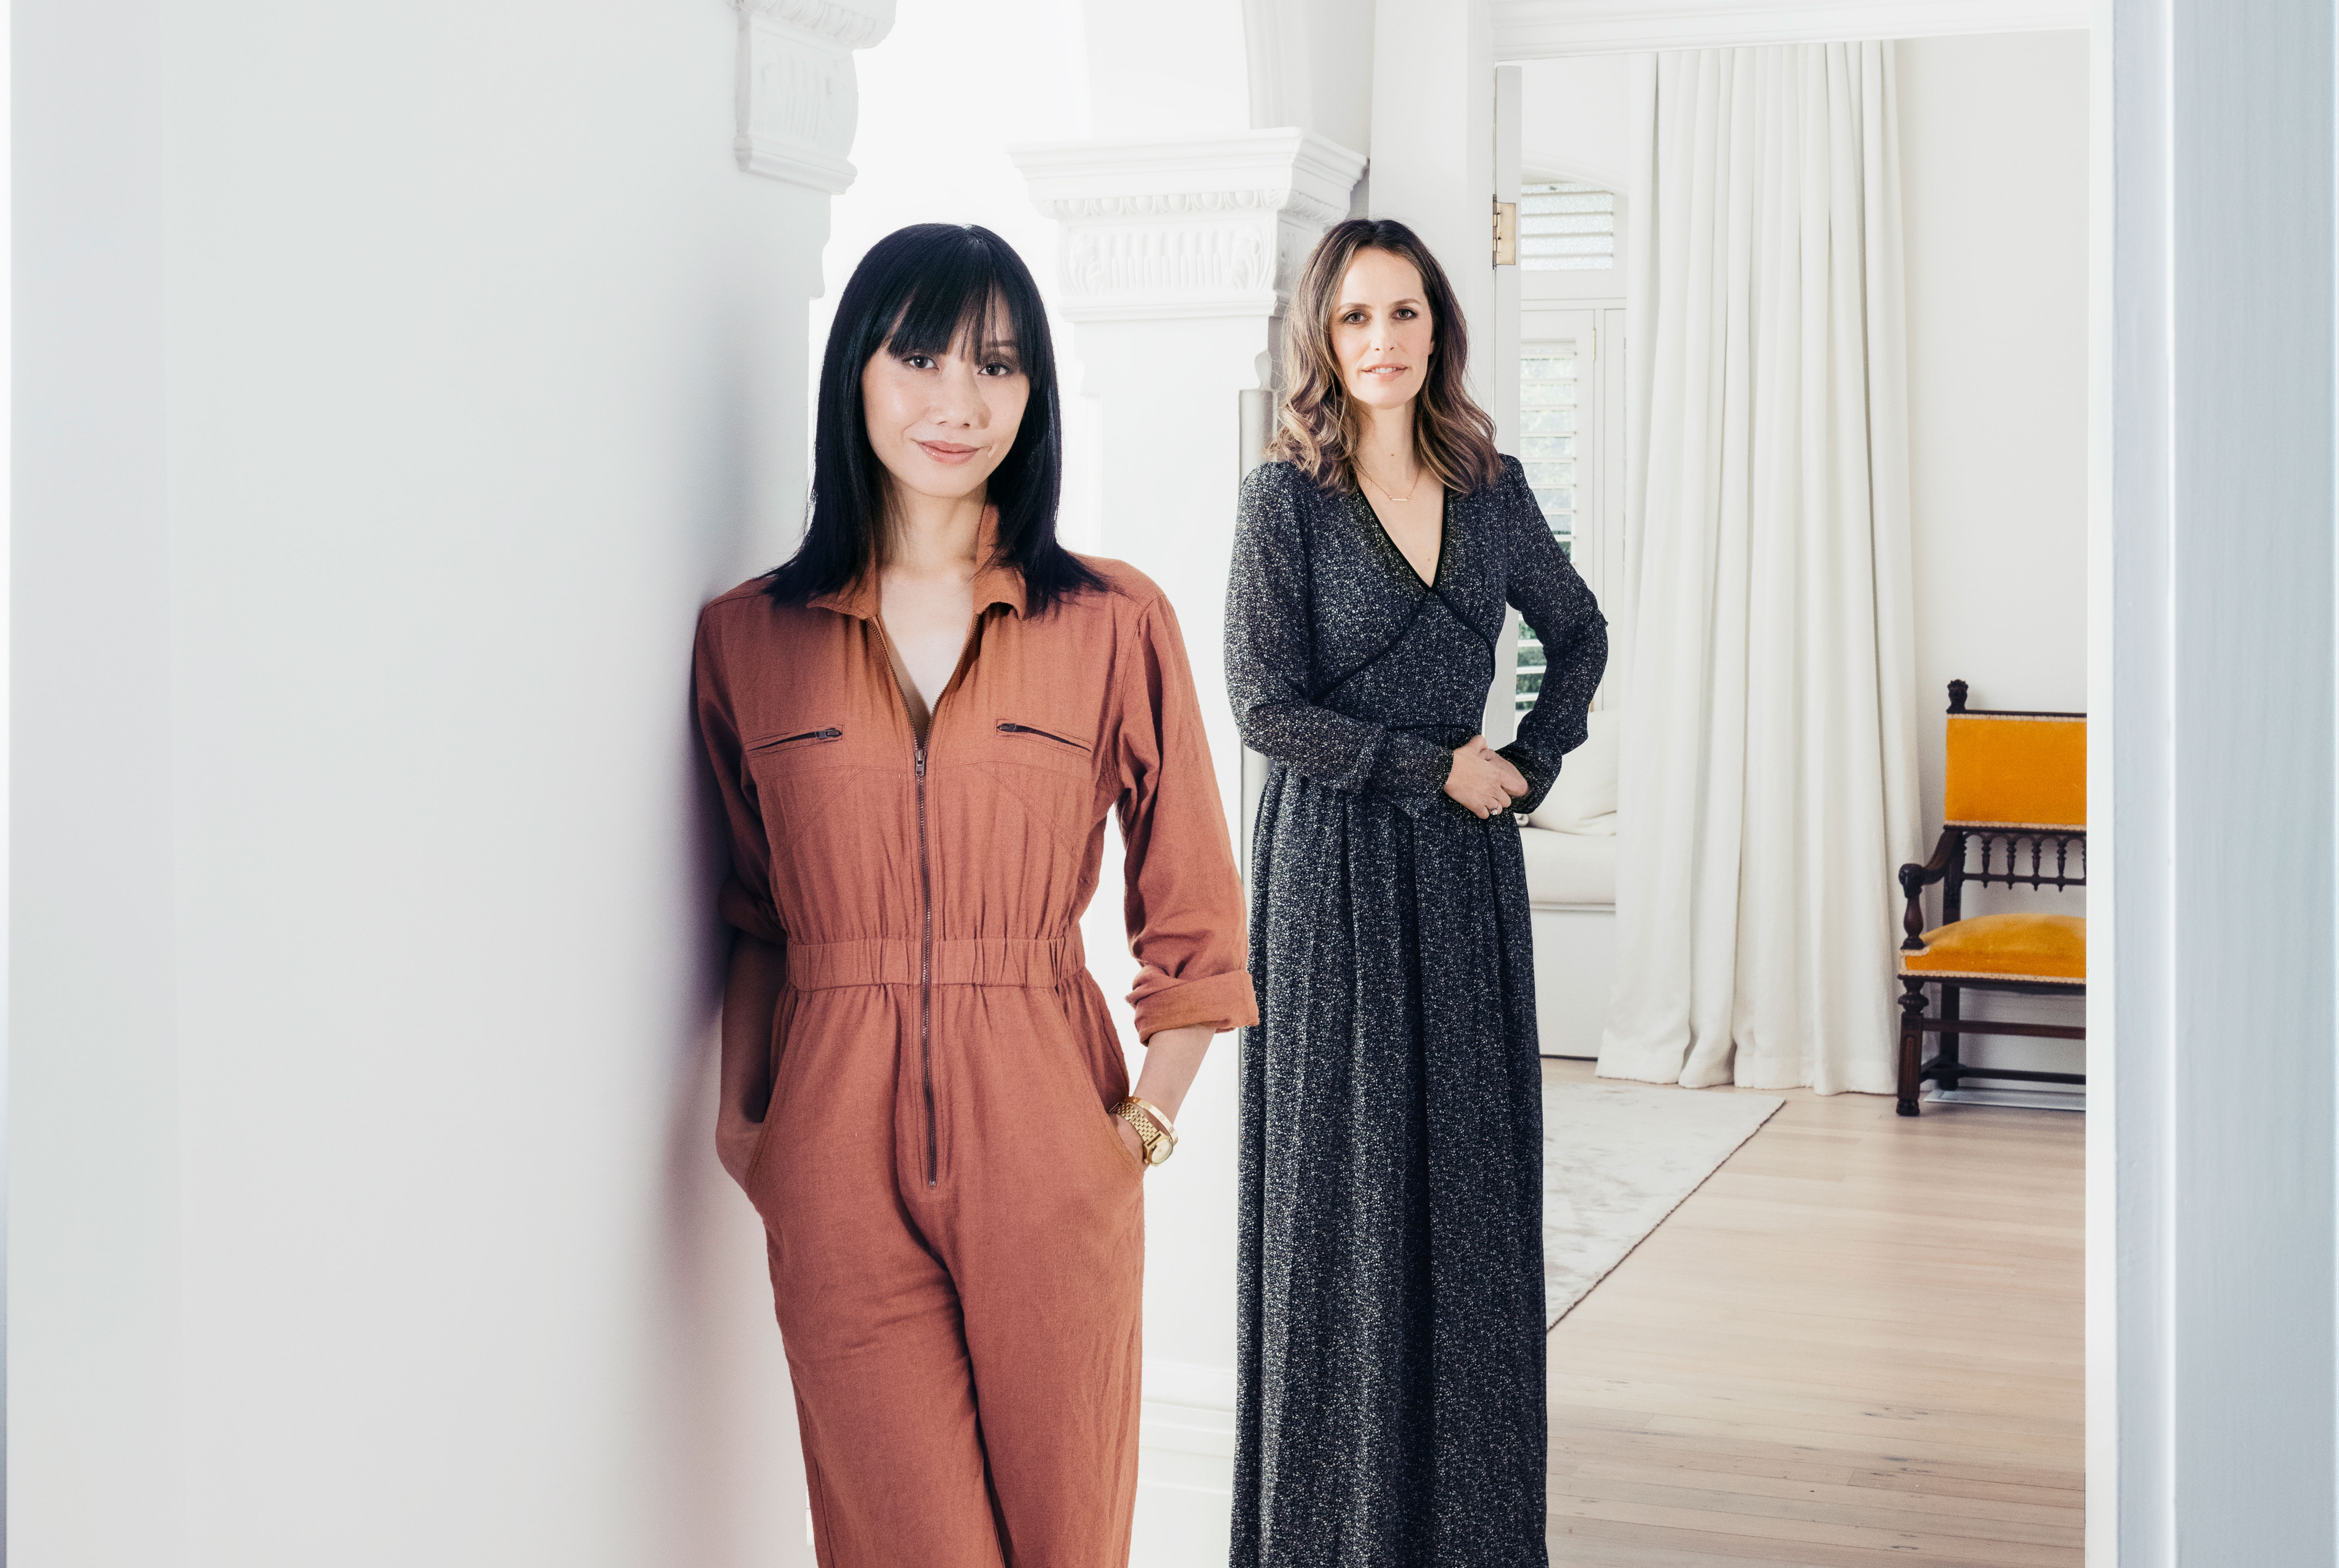 Gillian Khaw Shares Her Musts for Christmas Styling